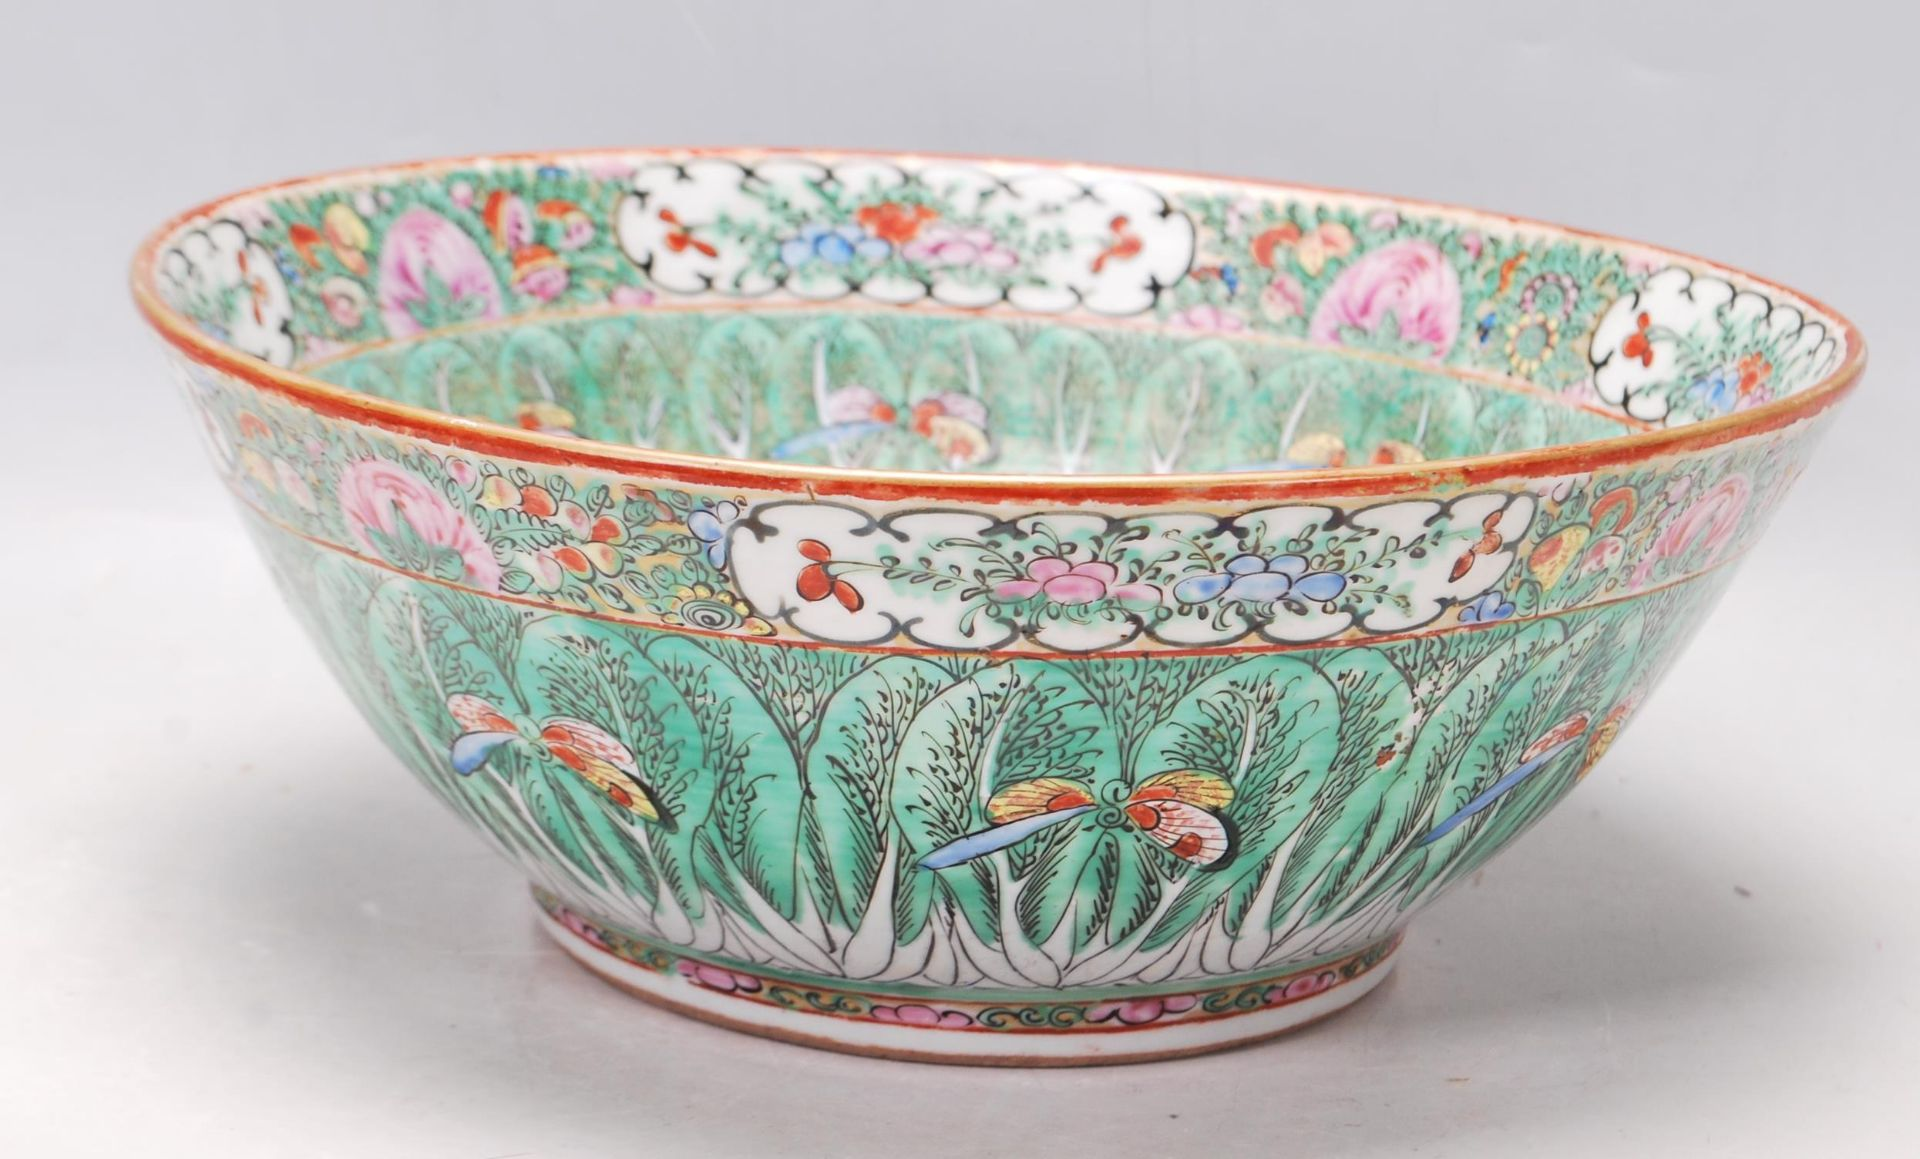 19TH CENTURY CHINESE ORIENTAL CENTRE PIECE BOWL - Image 3 of 11